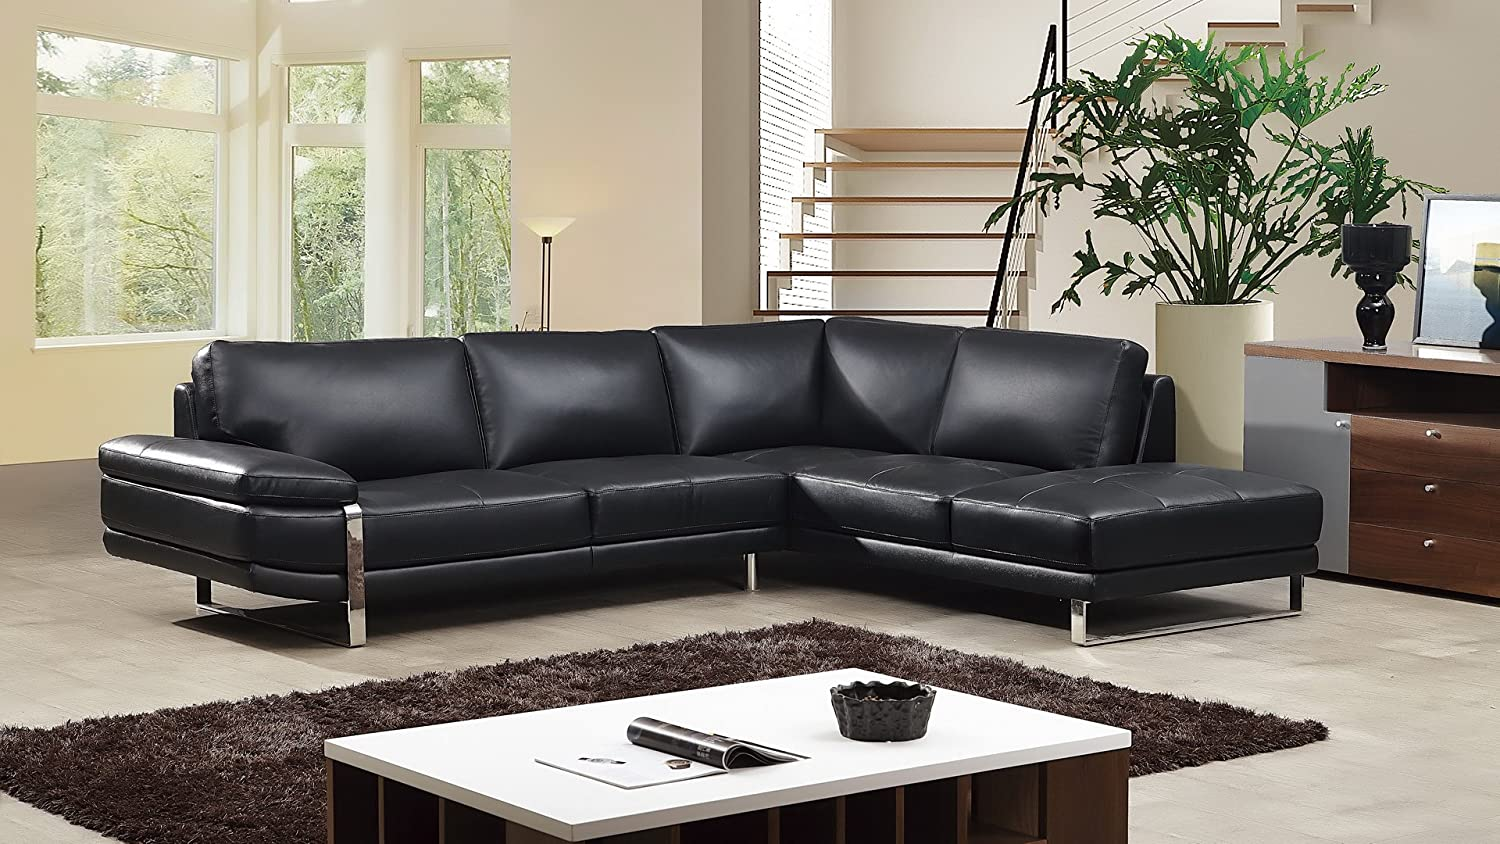 American Eagle Furniture King Spring new work one after low-pricing another Italian Modern Premium Leath